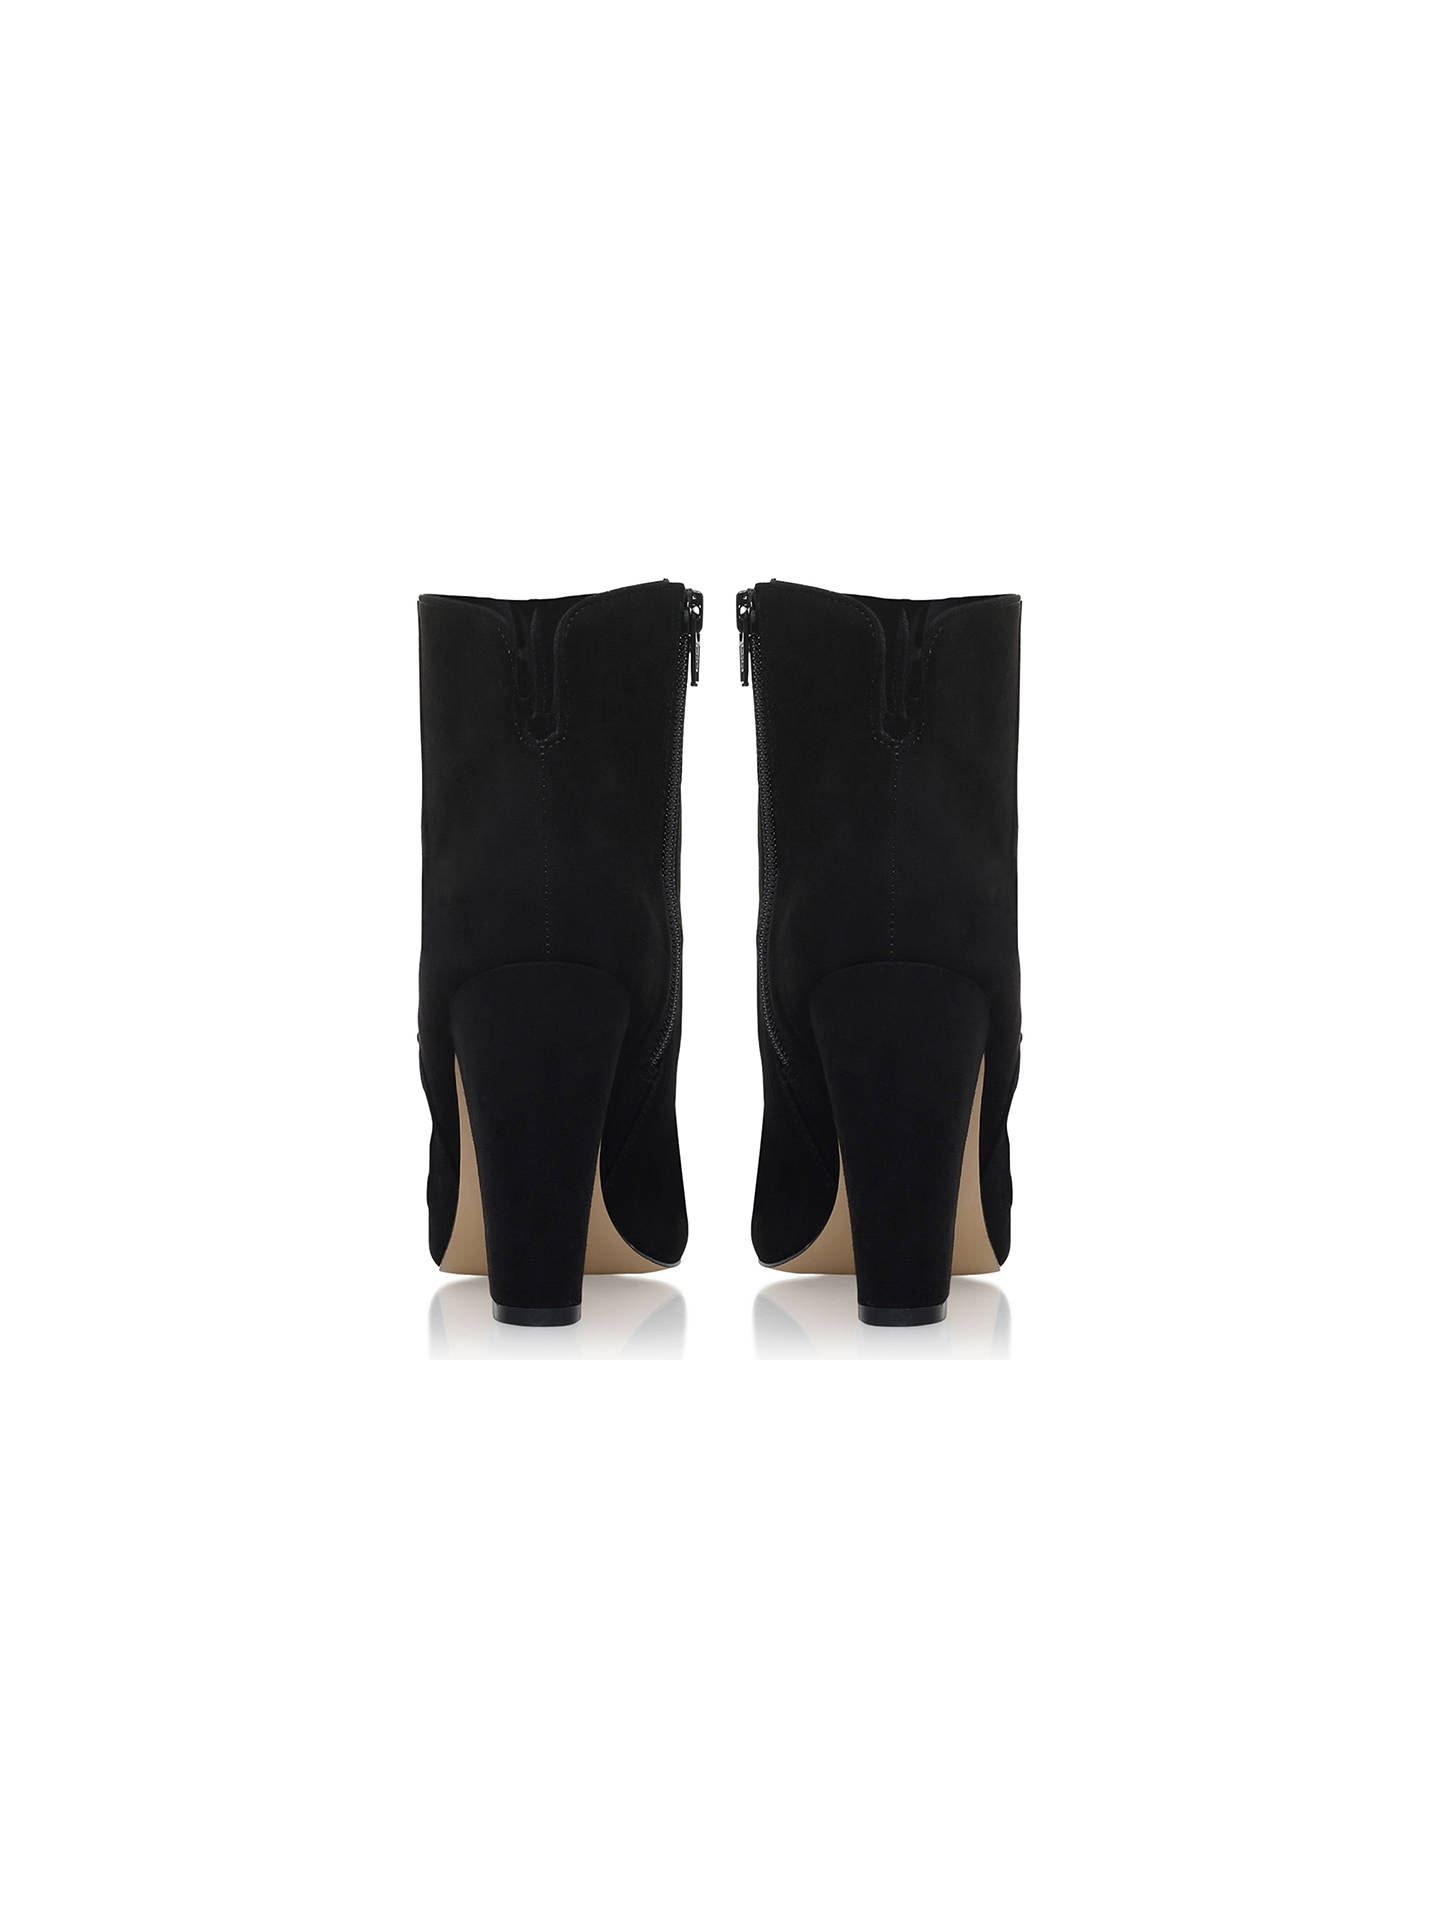 f659e64c511 Miss KG Sybil Occasion Peep Toe Ankle Boots at John Lewis   Partners